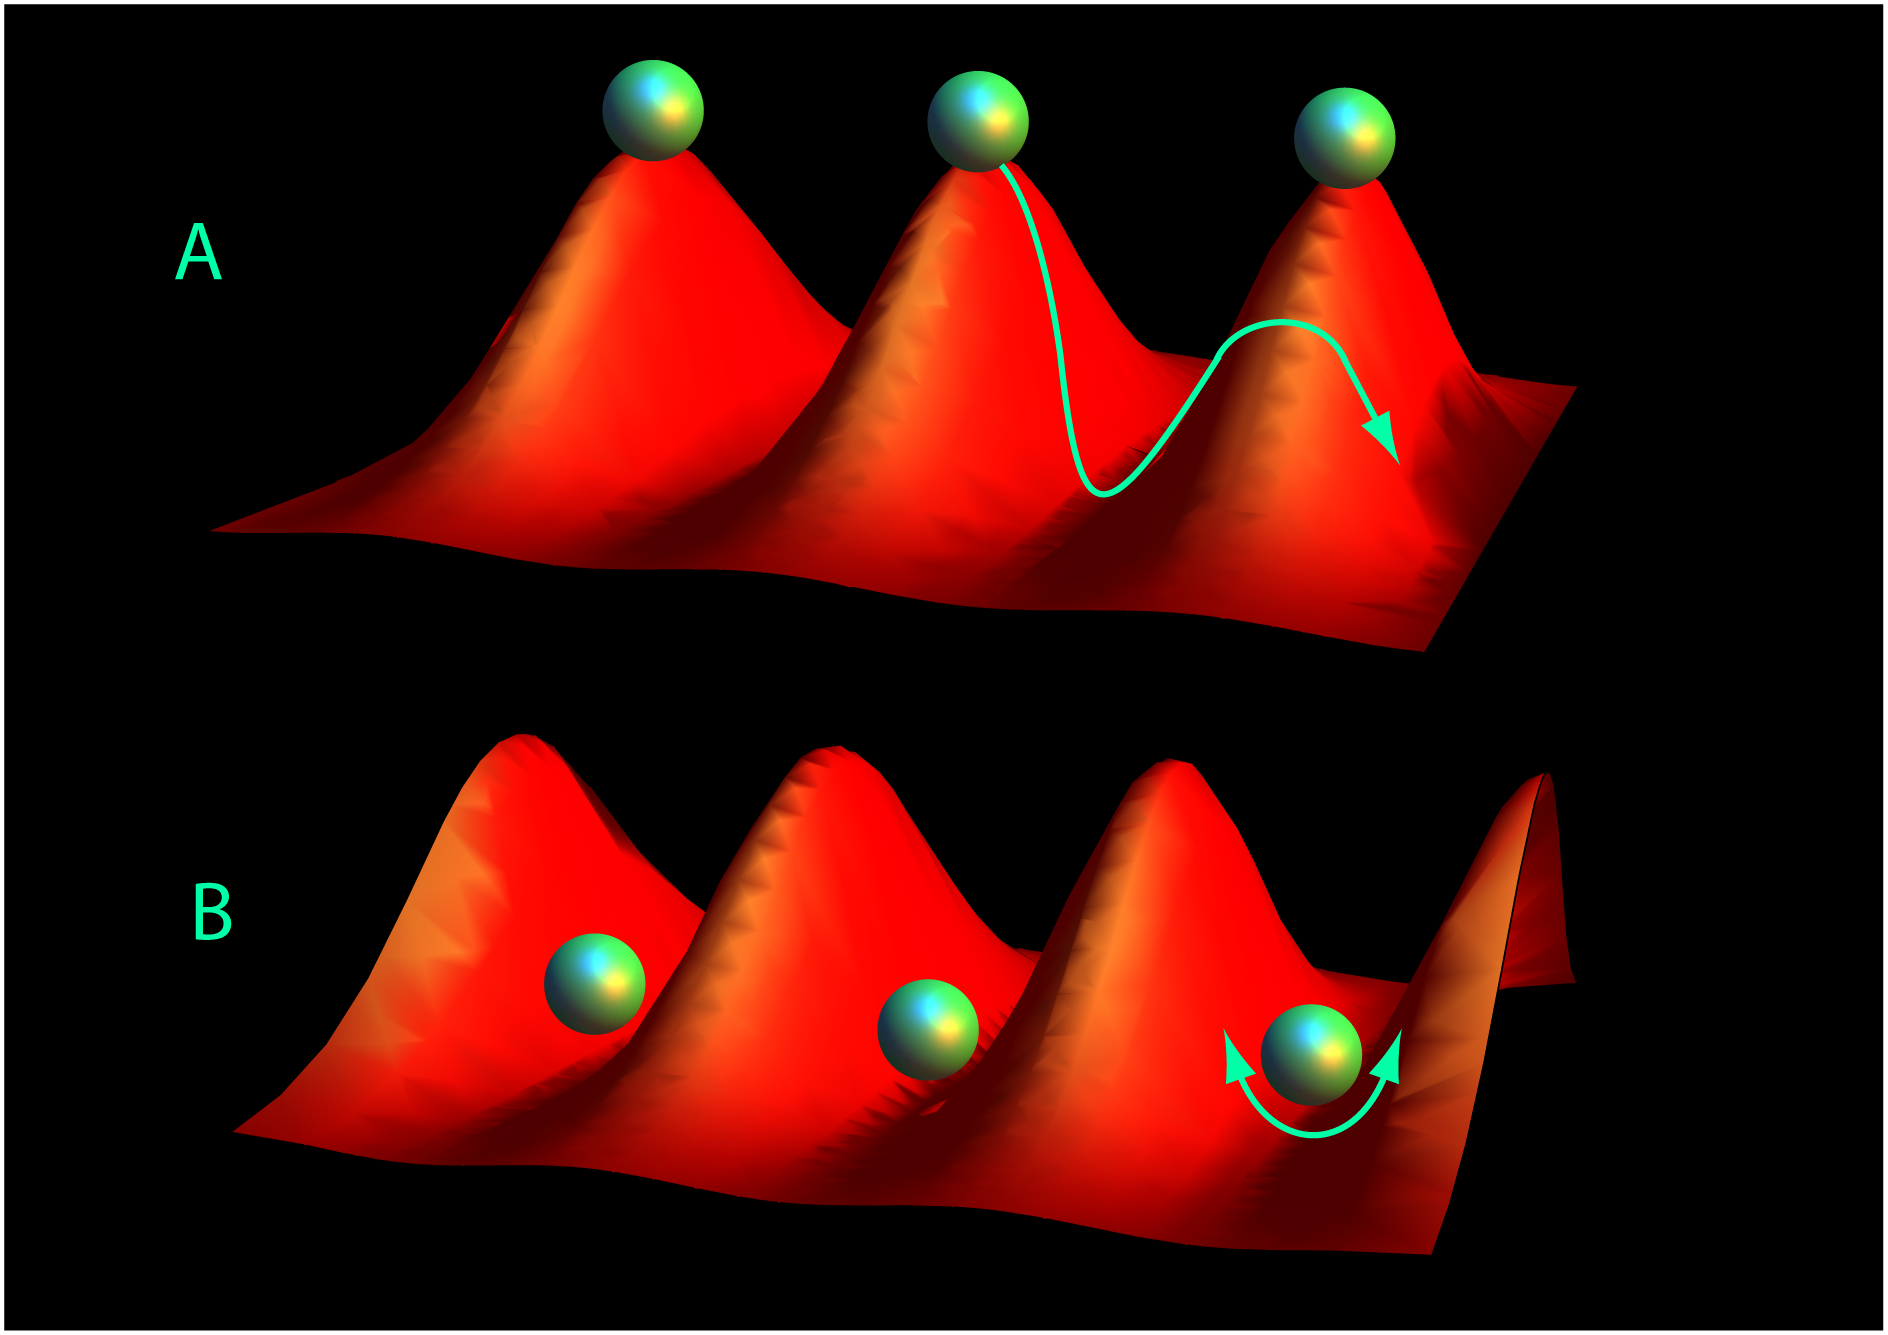 In previous Rydberg atom traps, atoms came to rest at the top of the peaks of the laser light lattice, and tended to escape. University of Michigan researchers solved this problem by quickly flipping the lattice, trapping the giant Rydberg atoms in the wells, like eggs in a carton. Image: Sarah Anderson